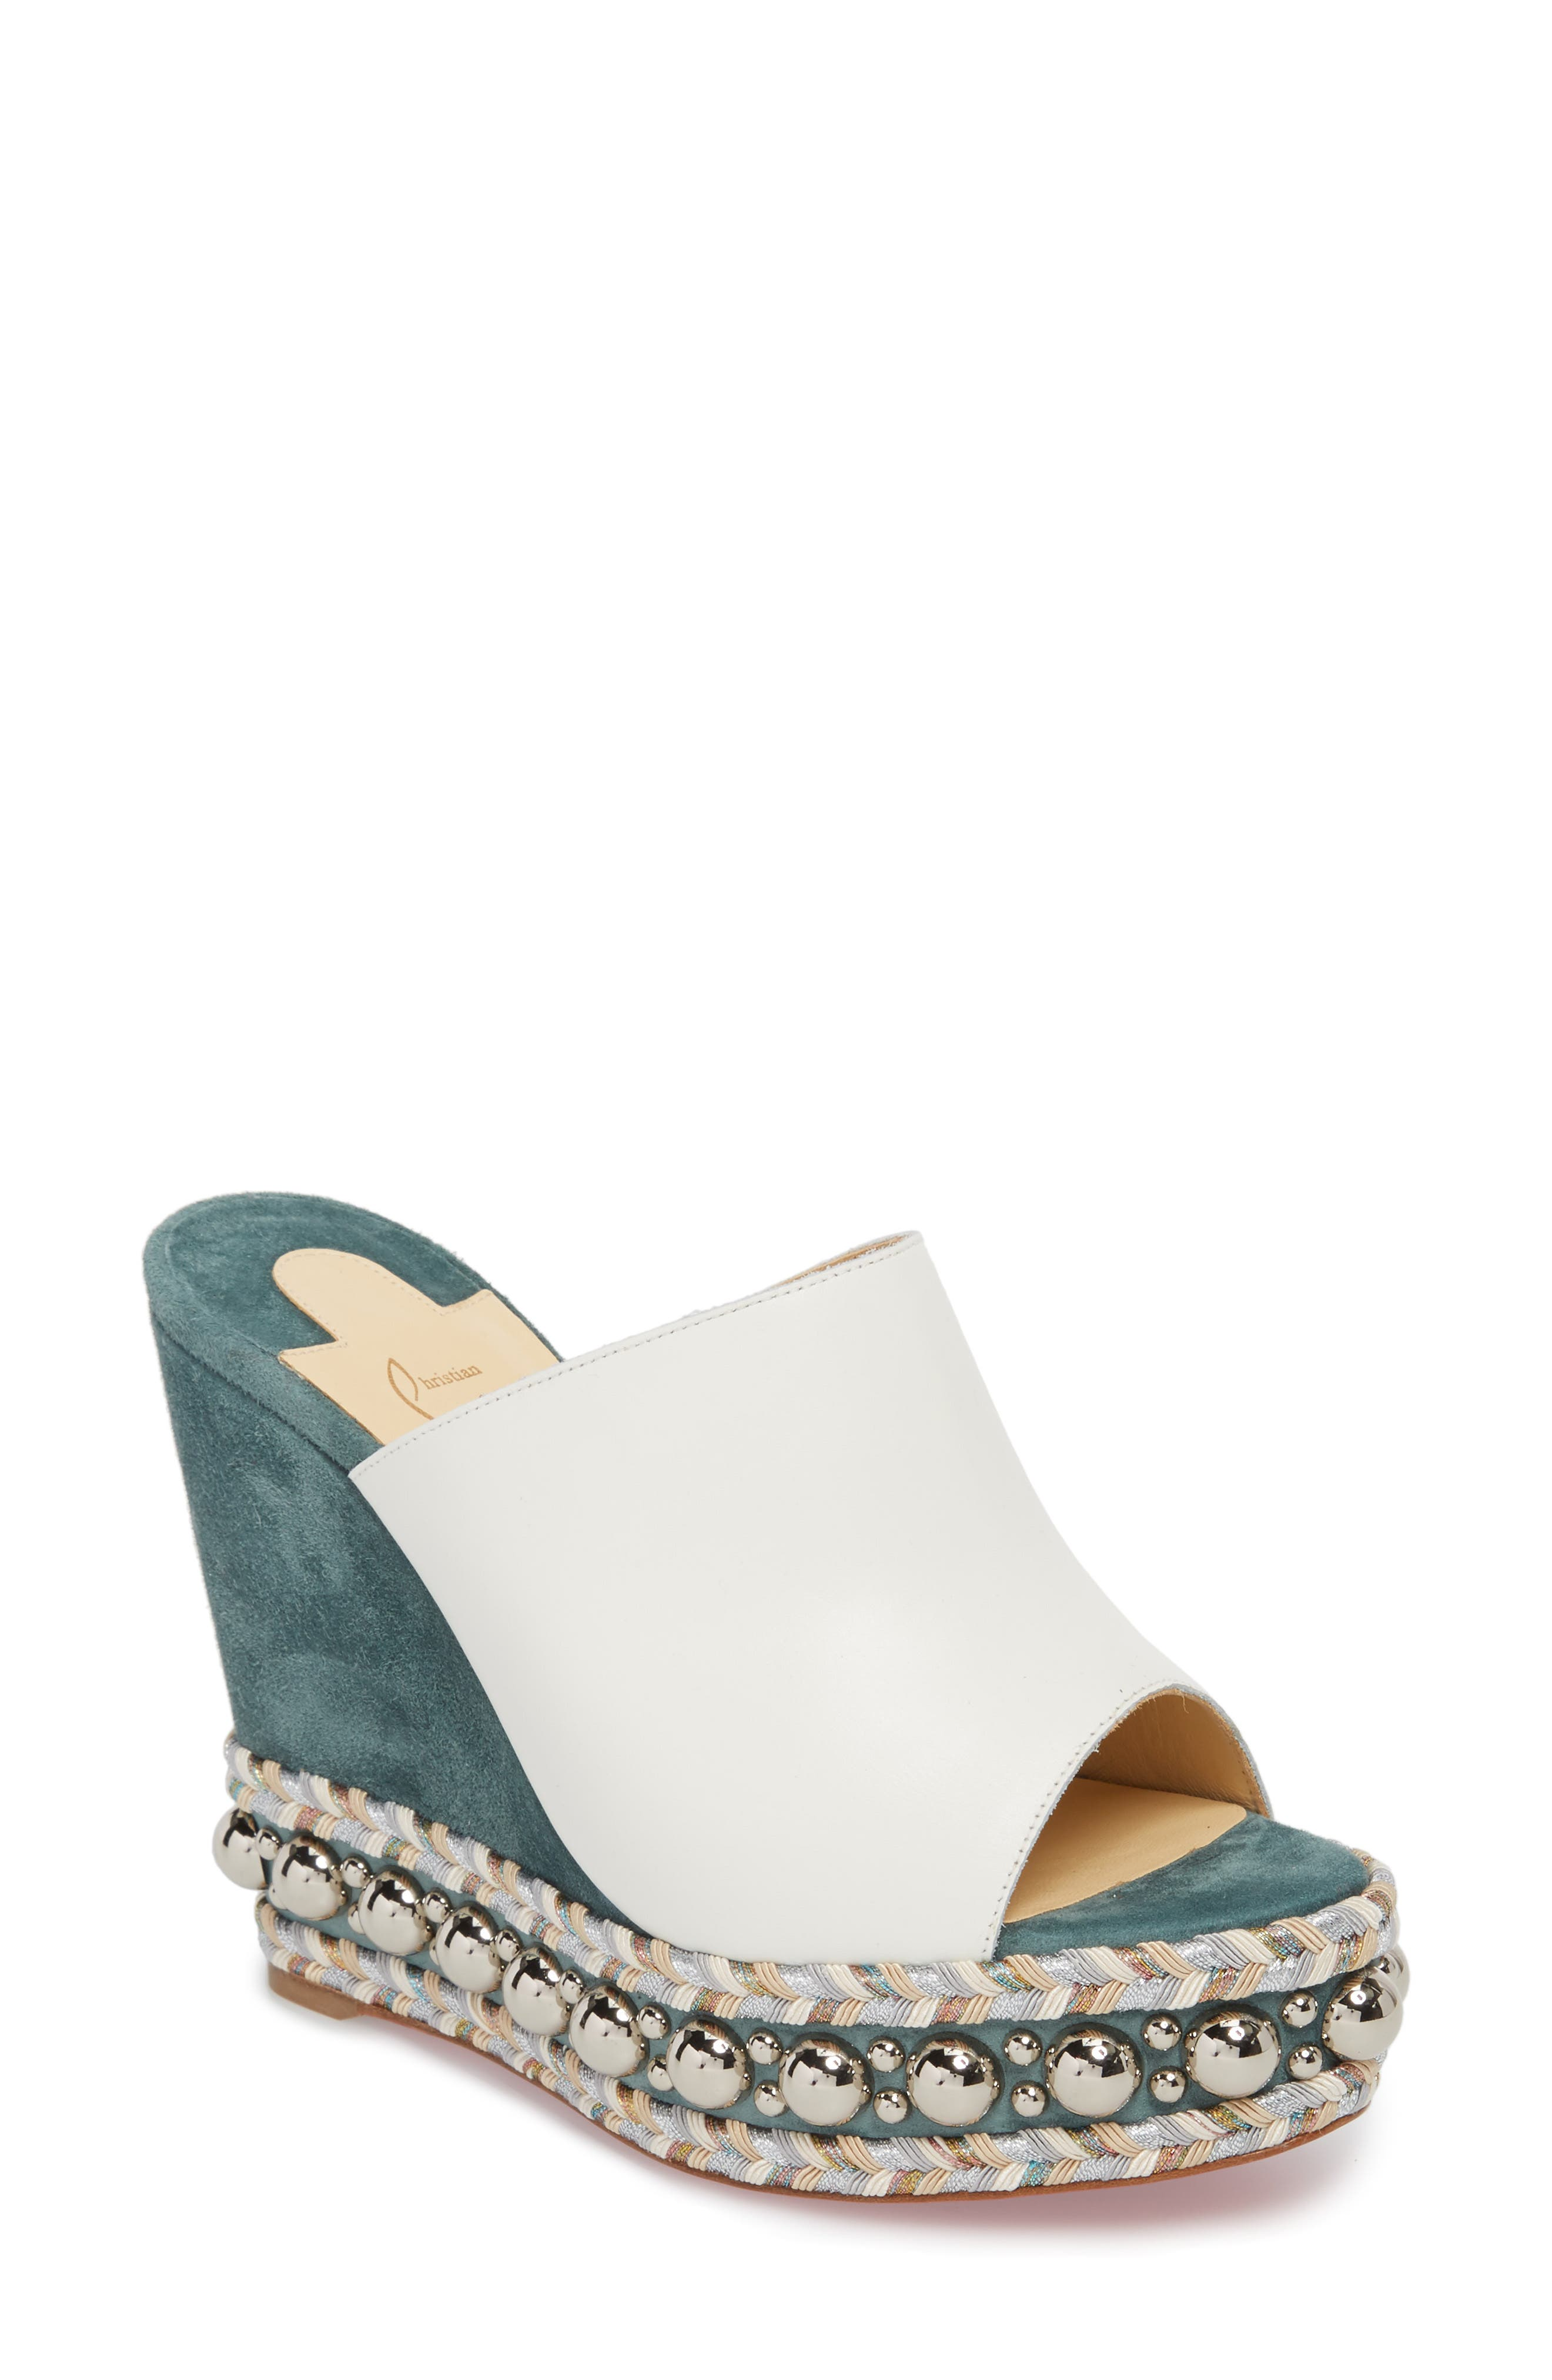 Janibasse Embellished Wedge Mule,                             Main thumbnail 1, color,                             710